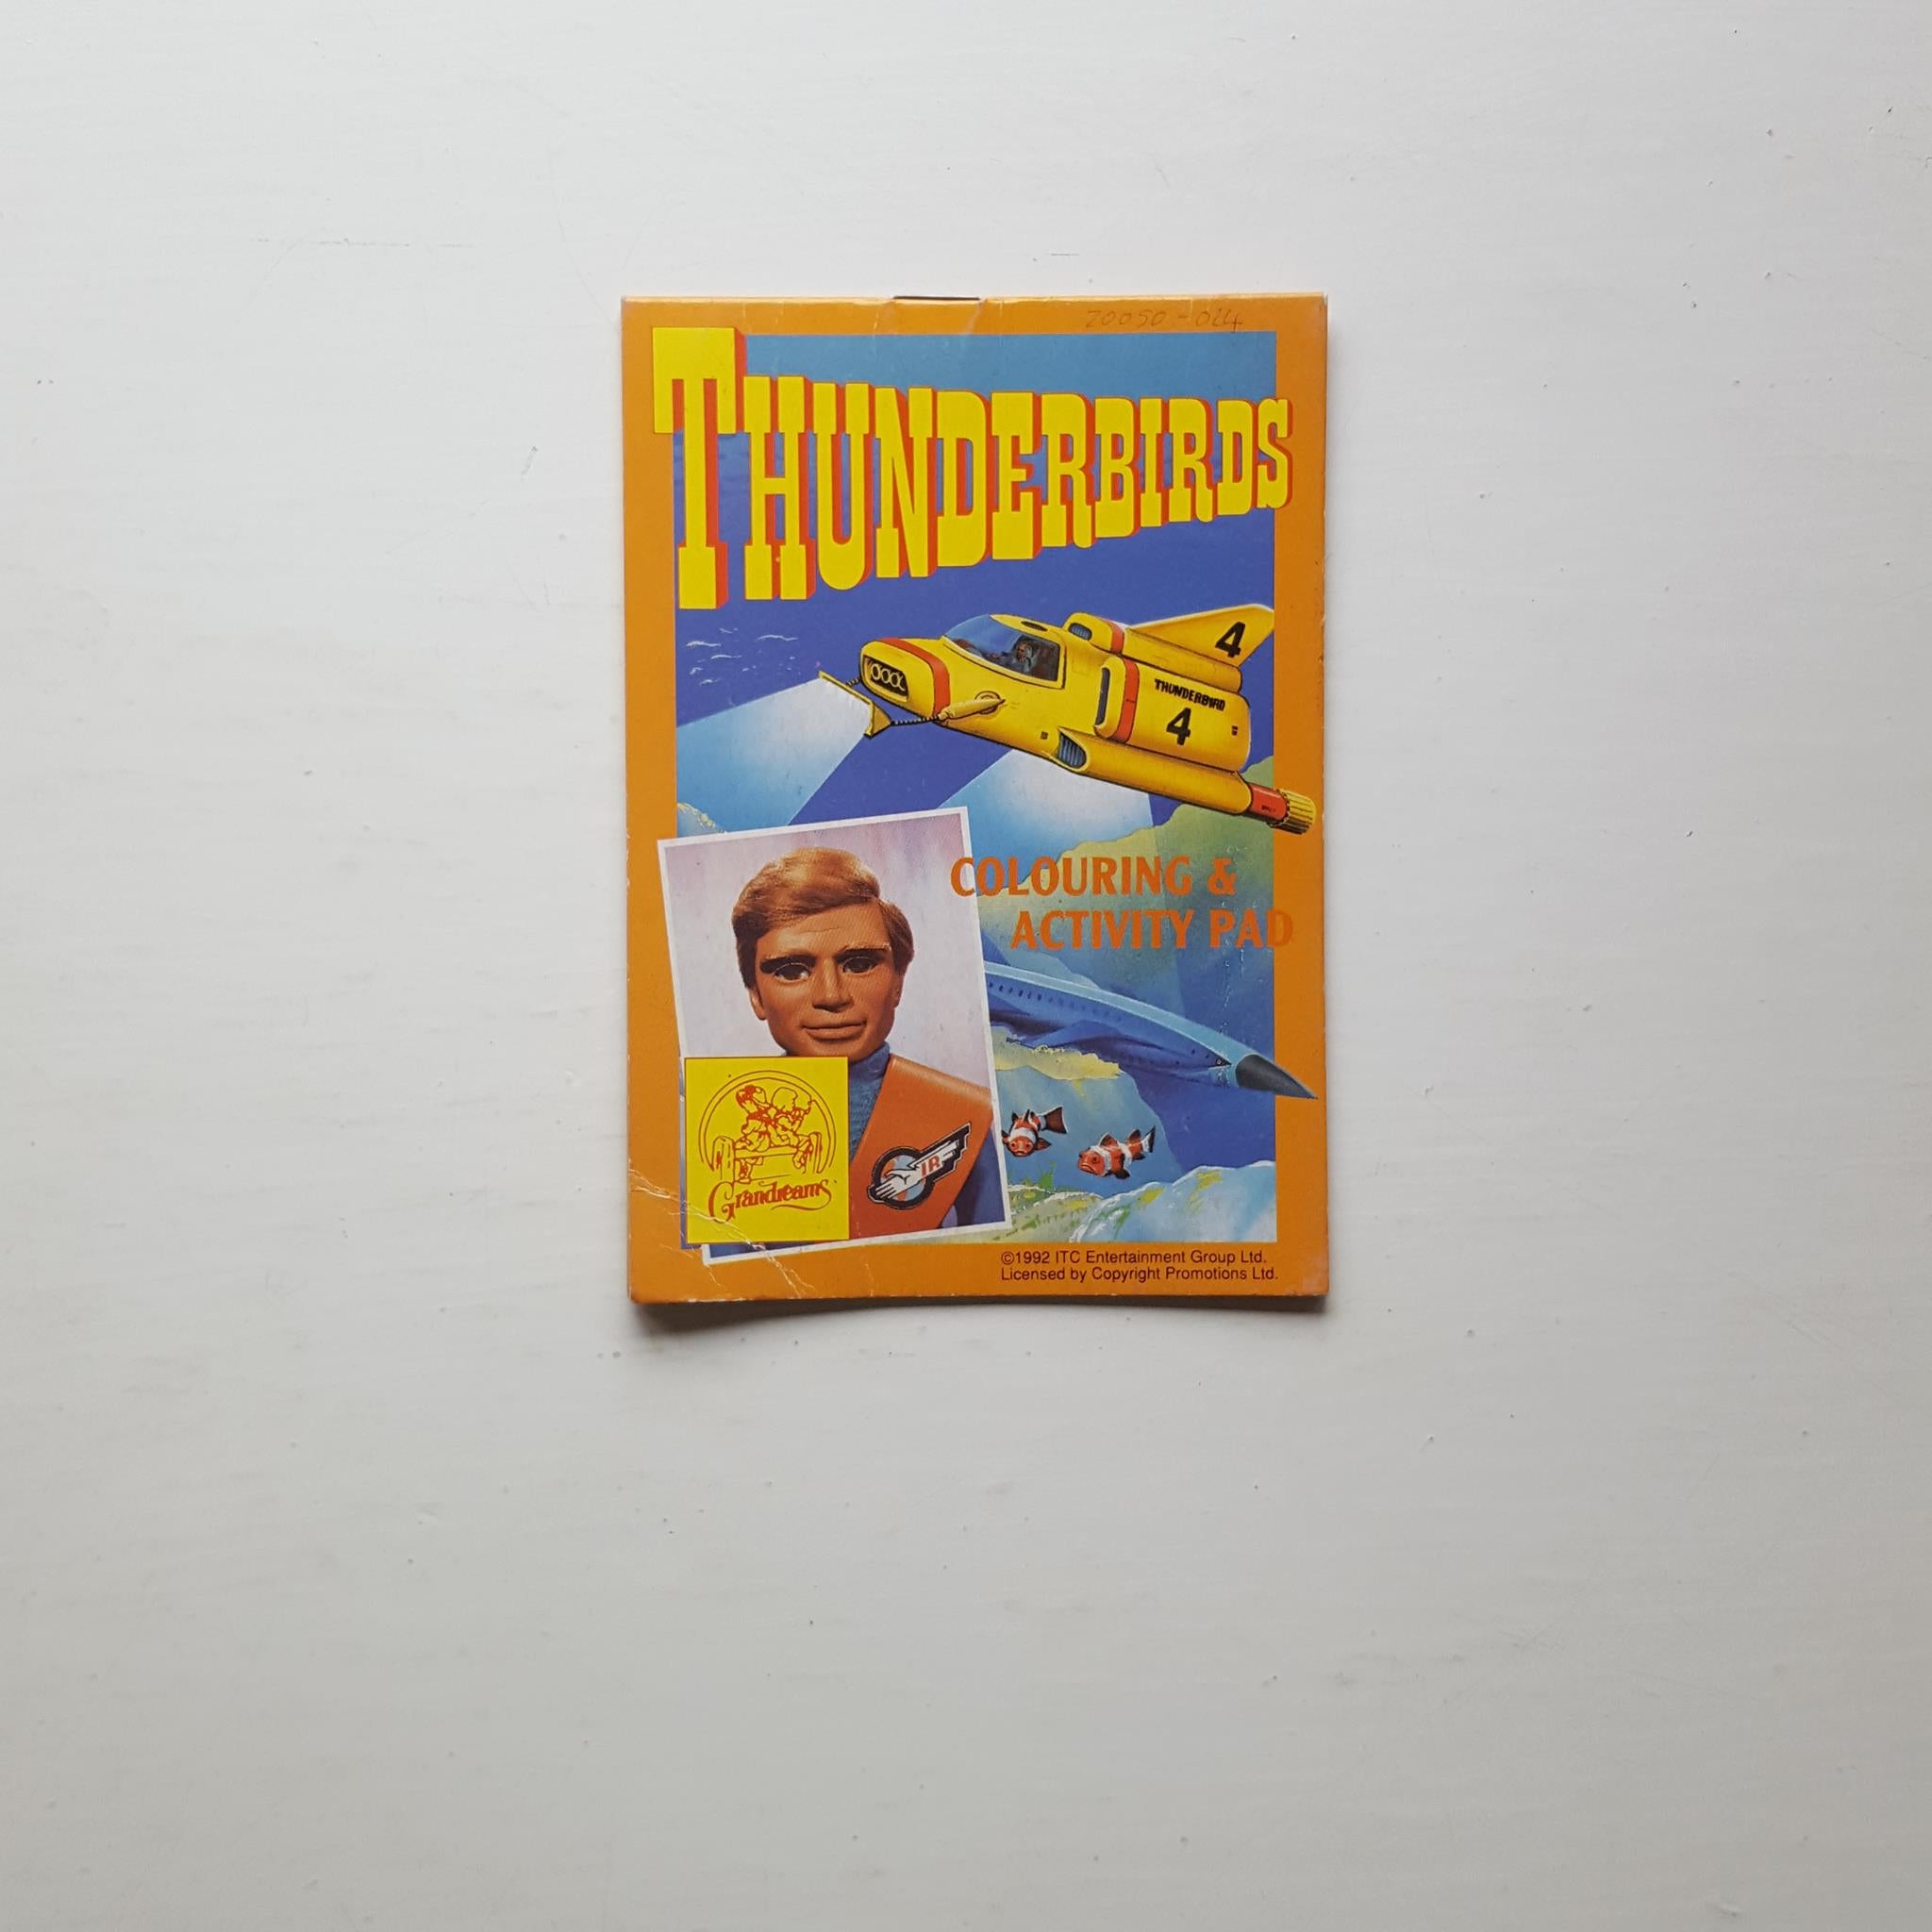 Thunderbirds Colouring & Activity Pad by ITC Entertainment Group Ltd